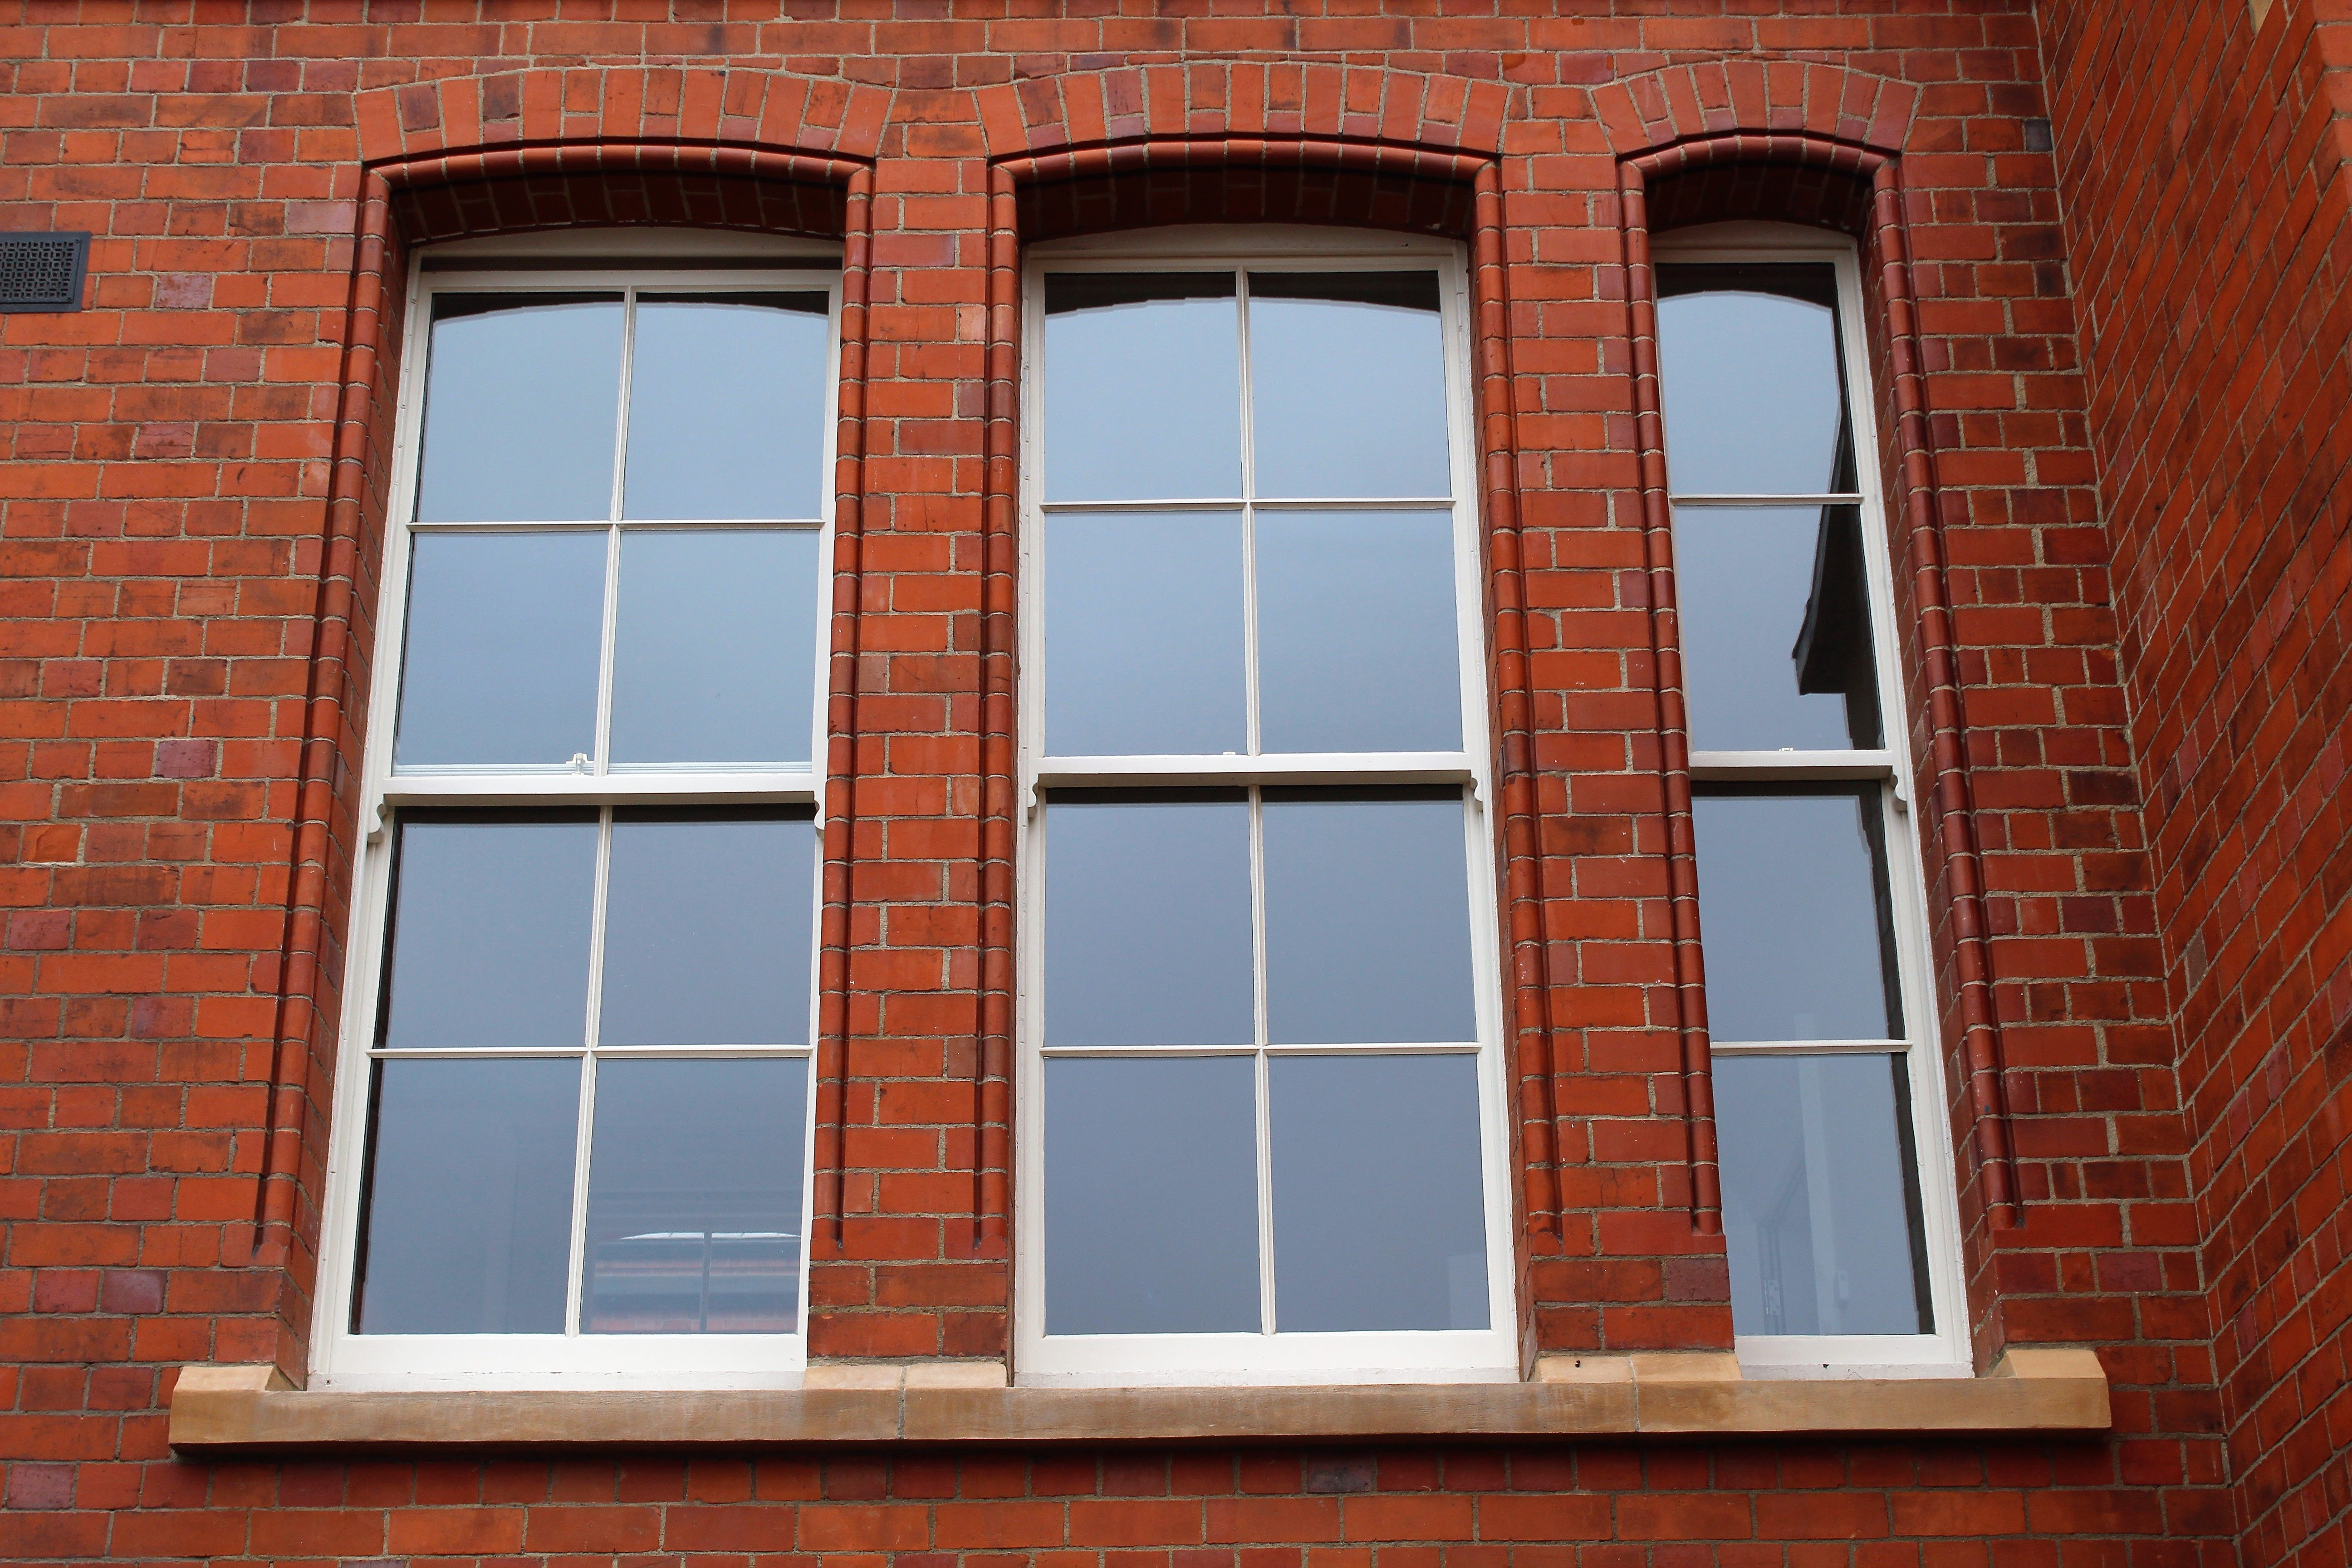 New Sliding Sash Windows In An Old Red Brick Dublin Terrace Sash Windows Windows Casement Windows